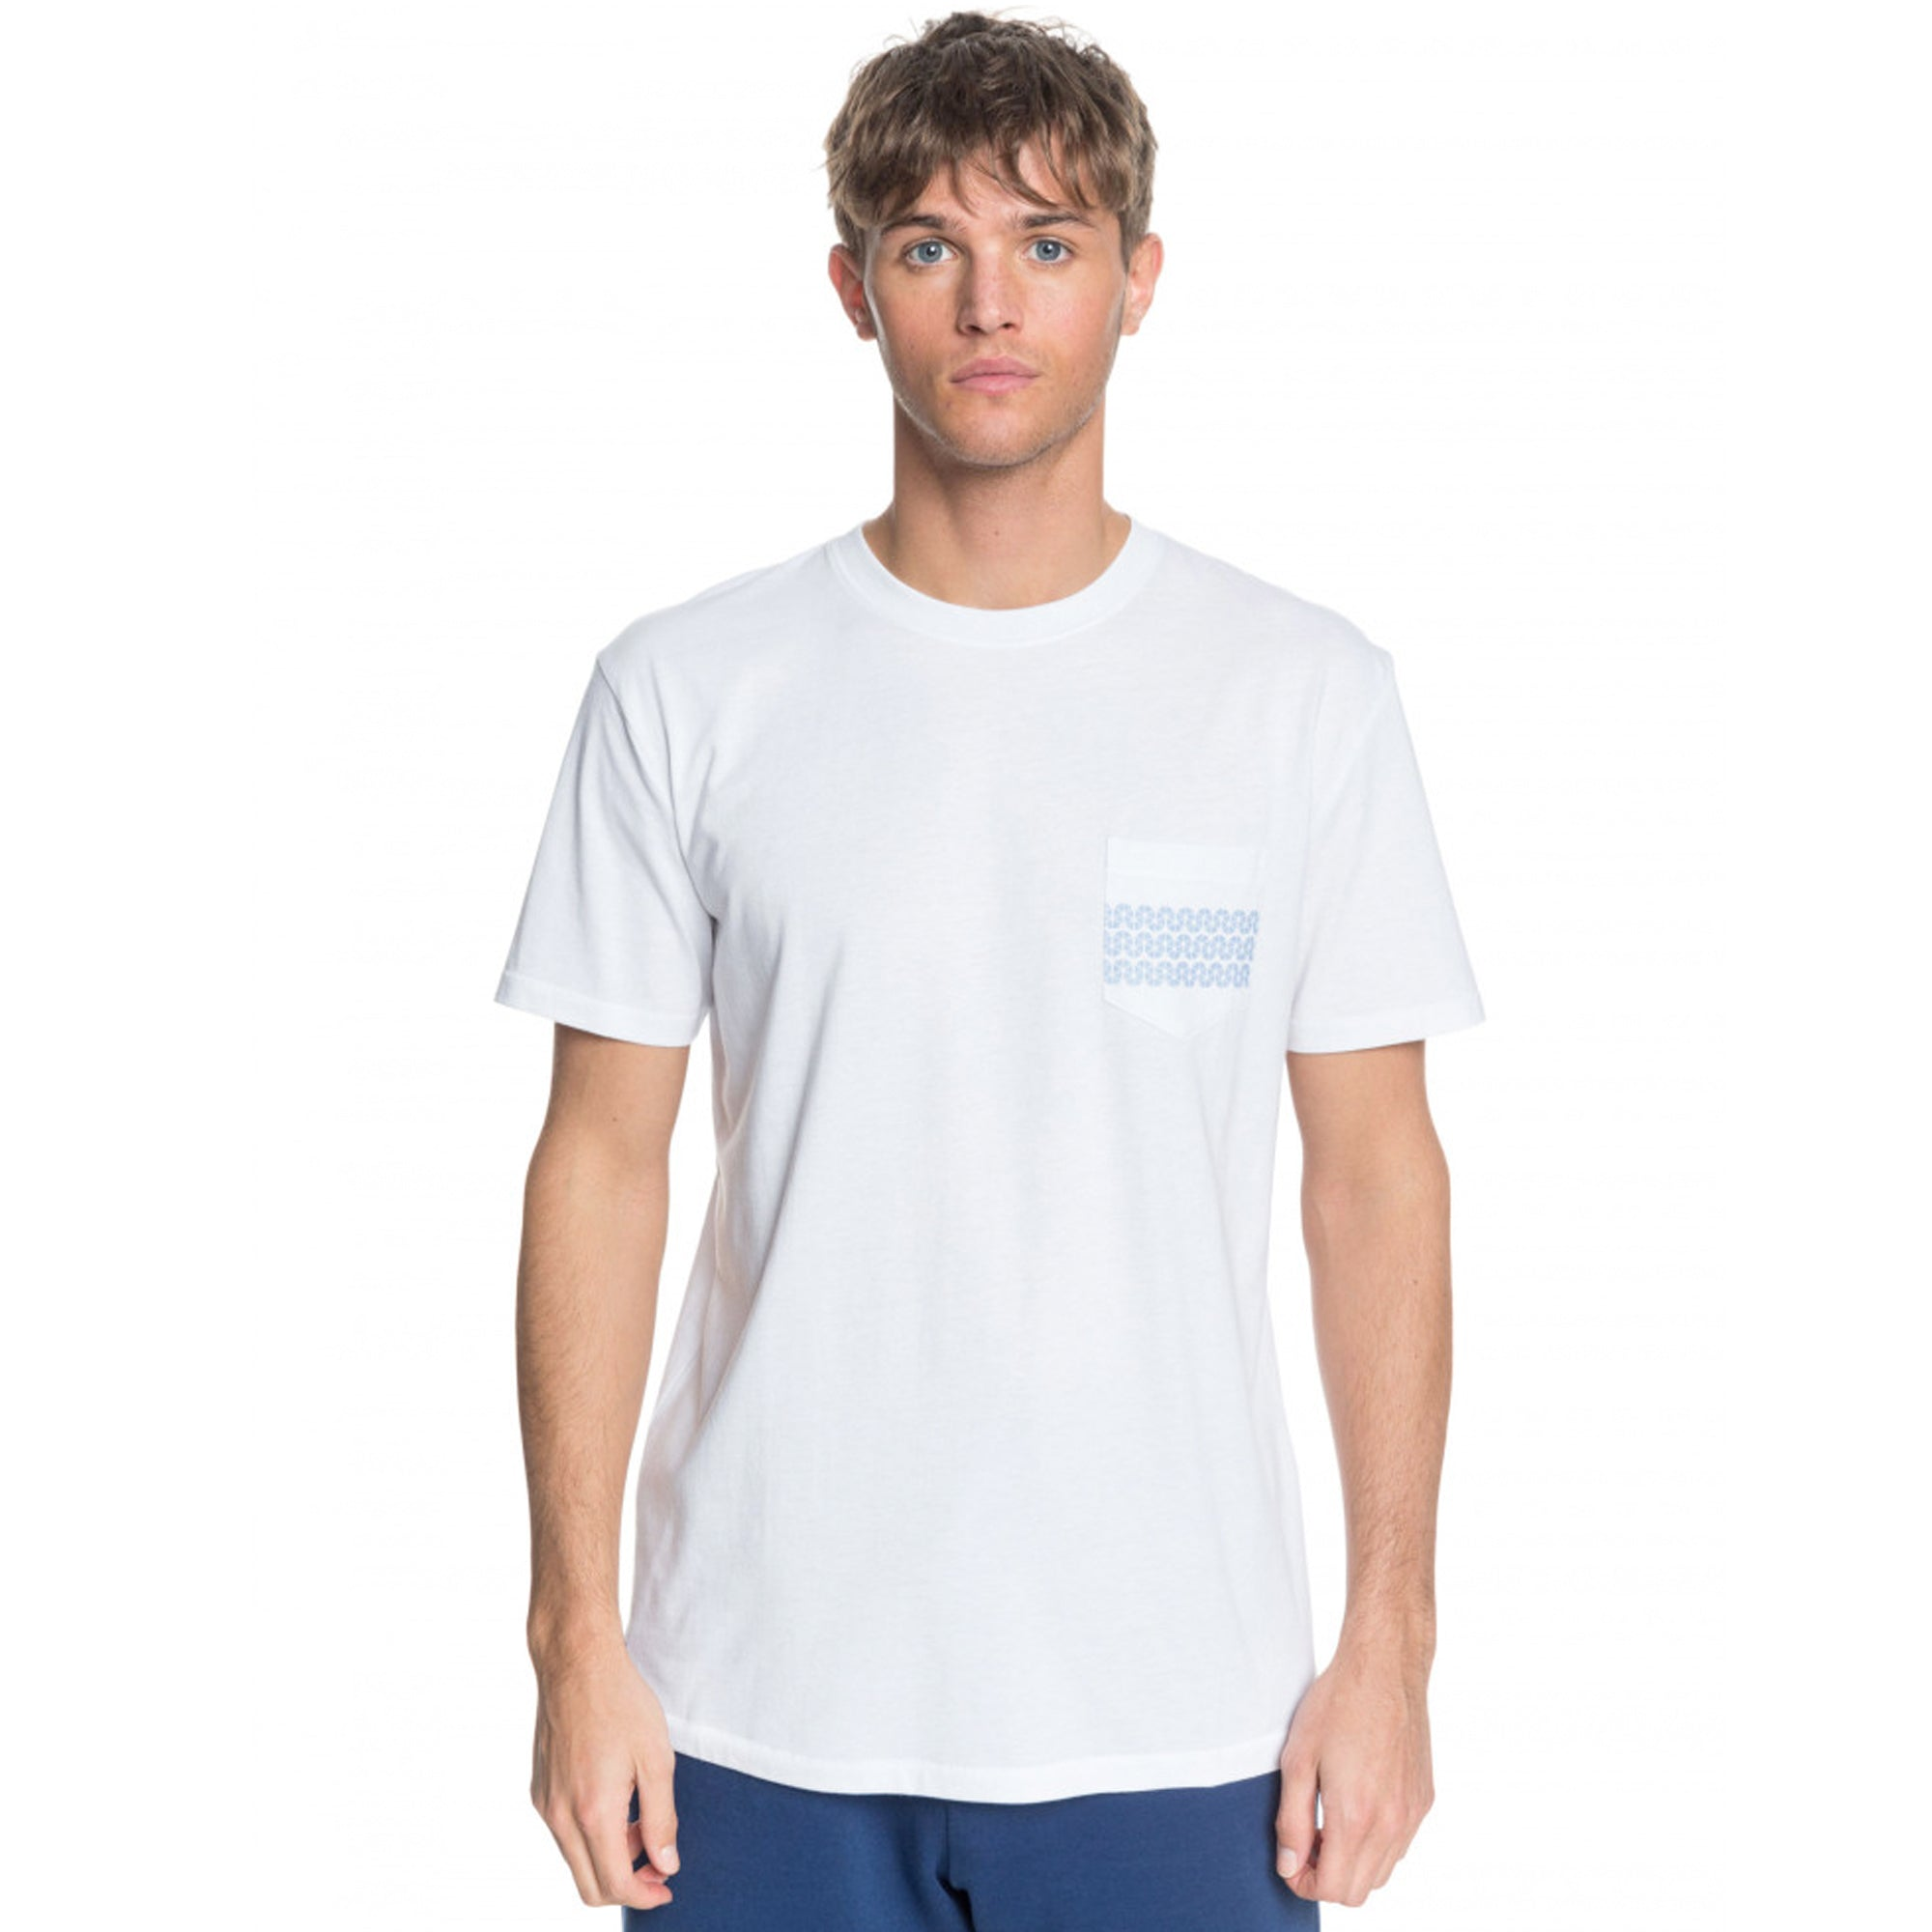 Quiksilver MTK Tech Pocket Men's S/S T-Shirt